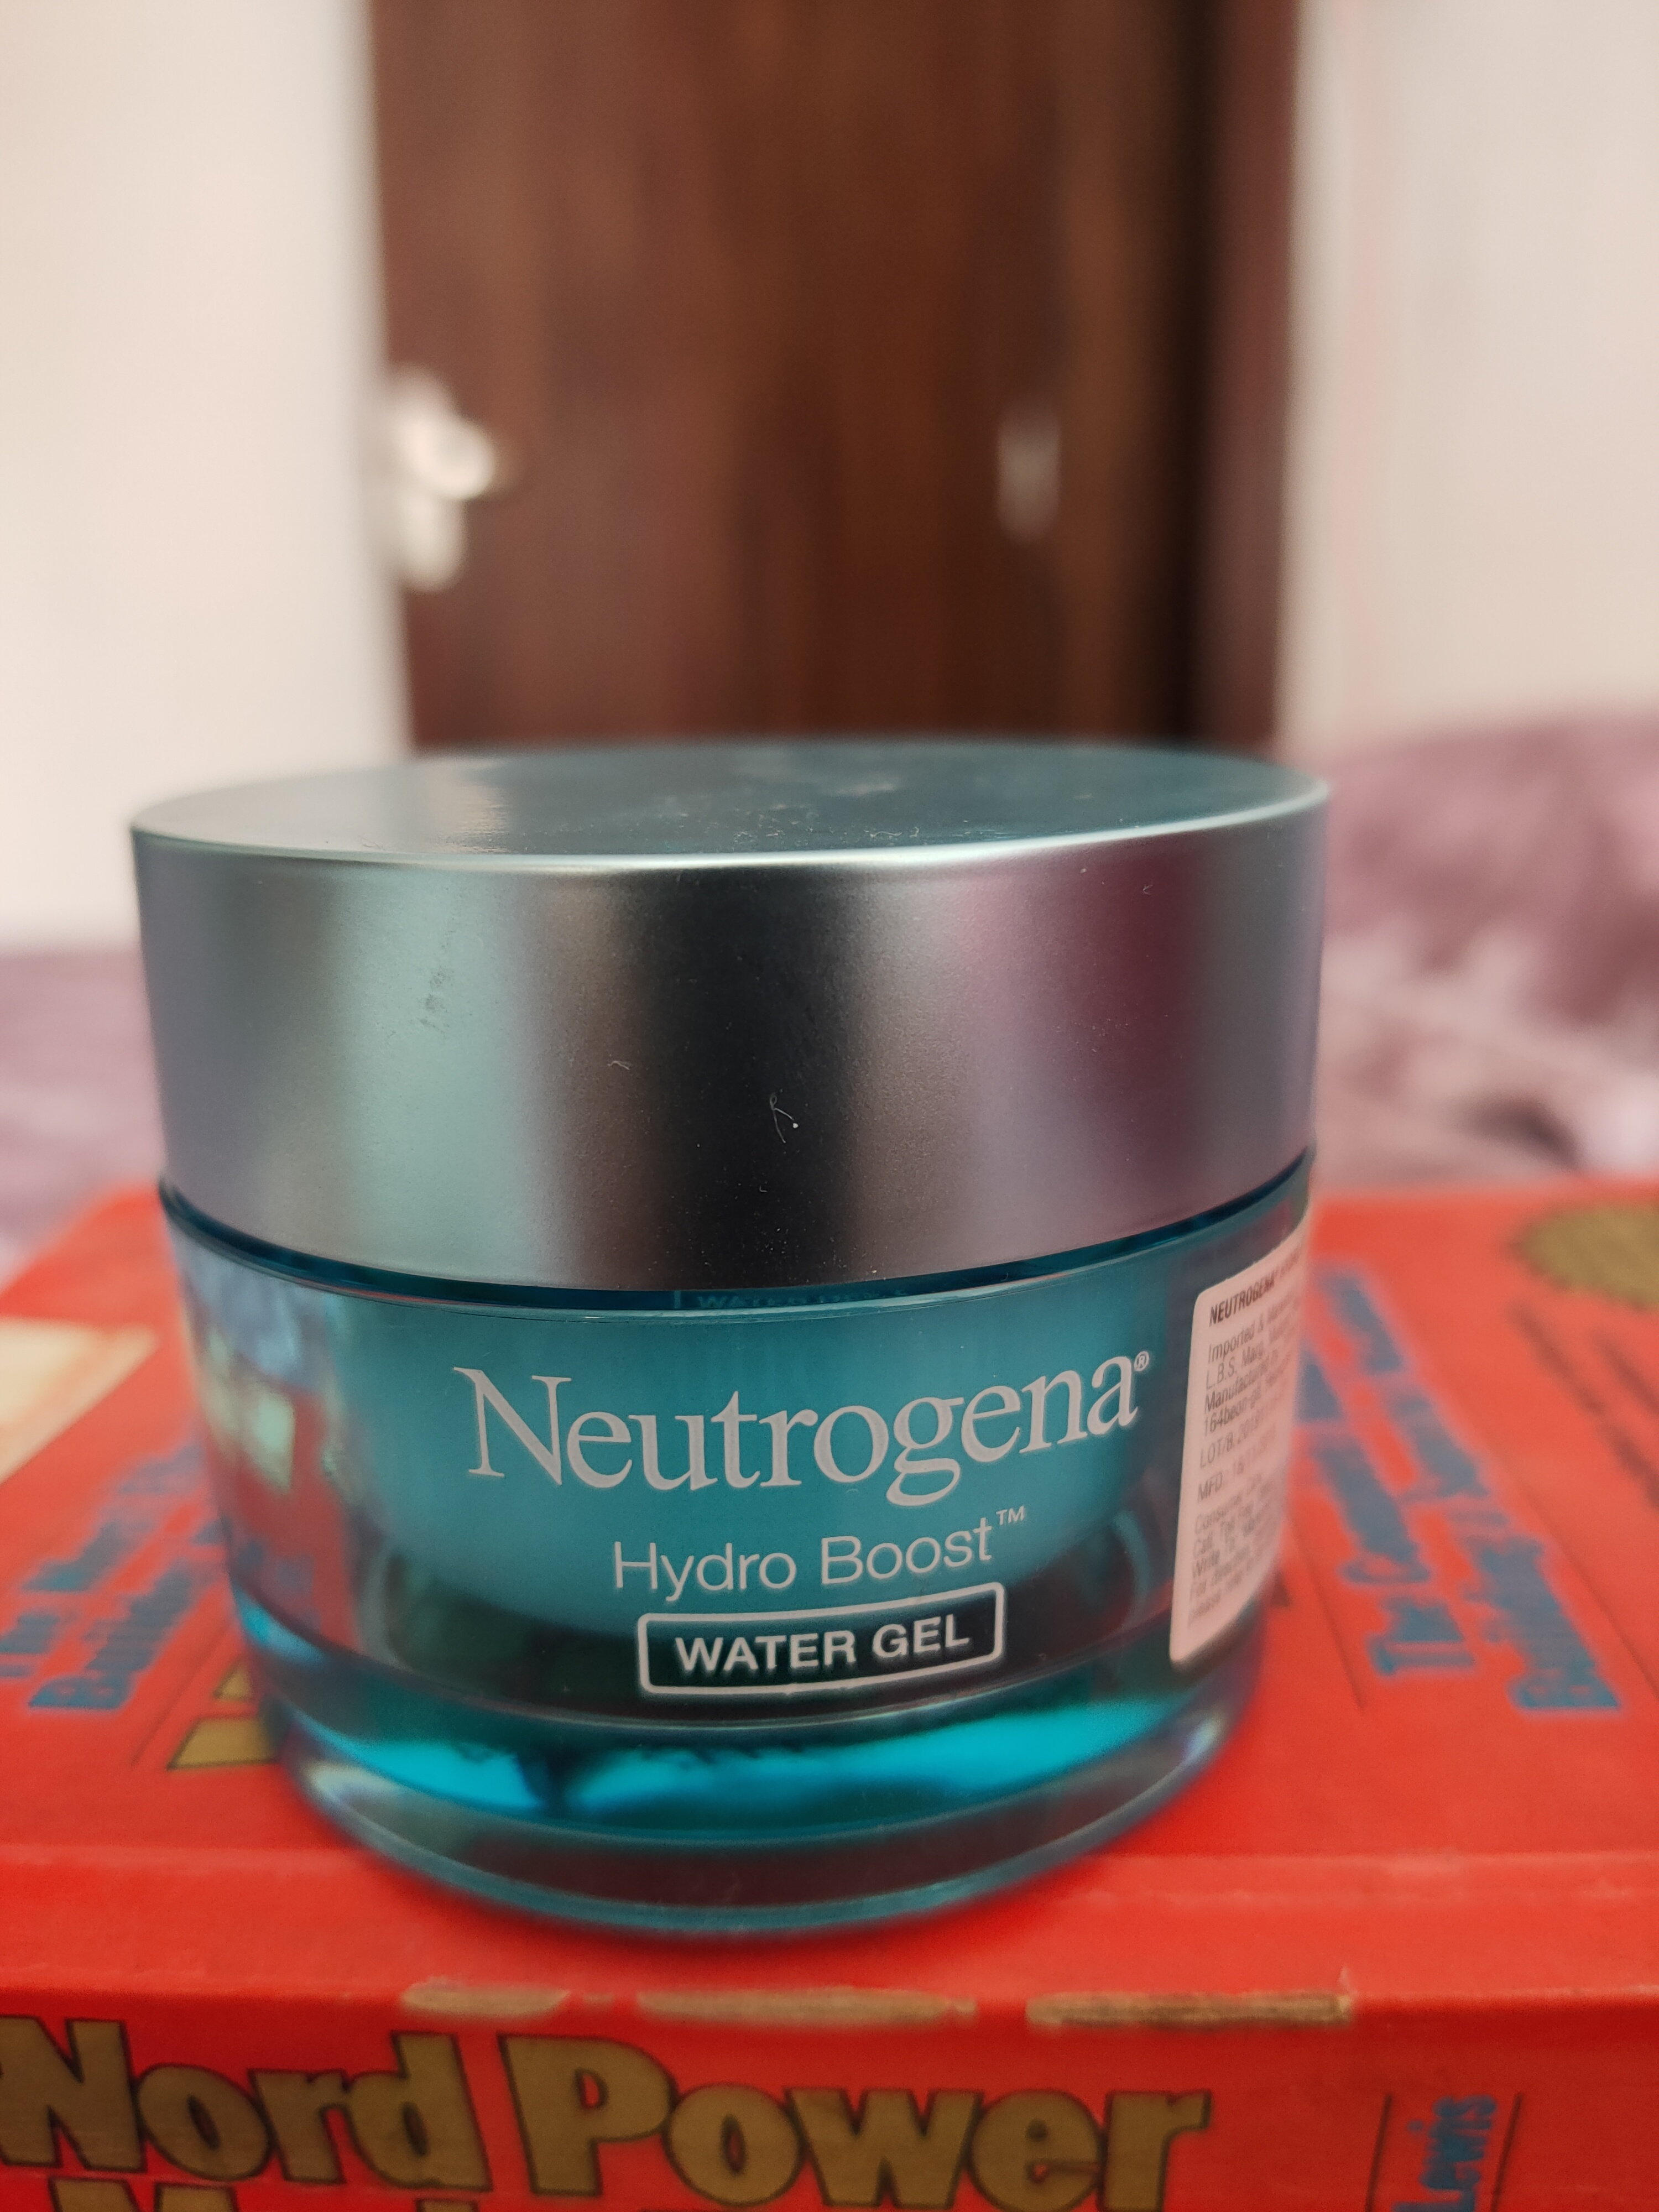 Neutrogena Hydro Boost Water Gel With Hyaluronic Acid -Best for oily skin-By suhanigaba